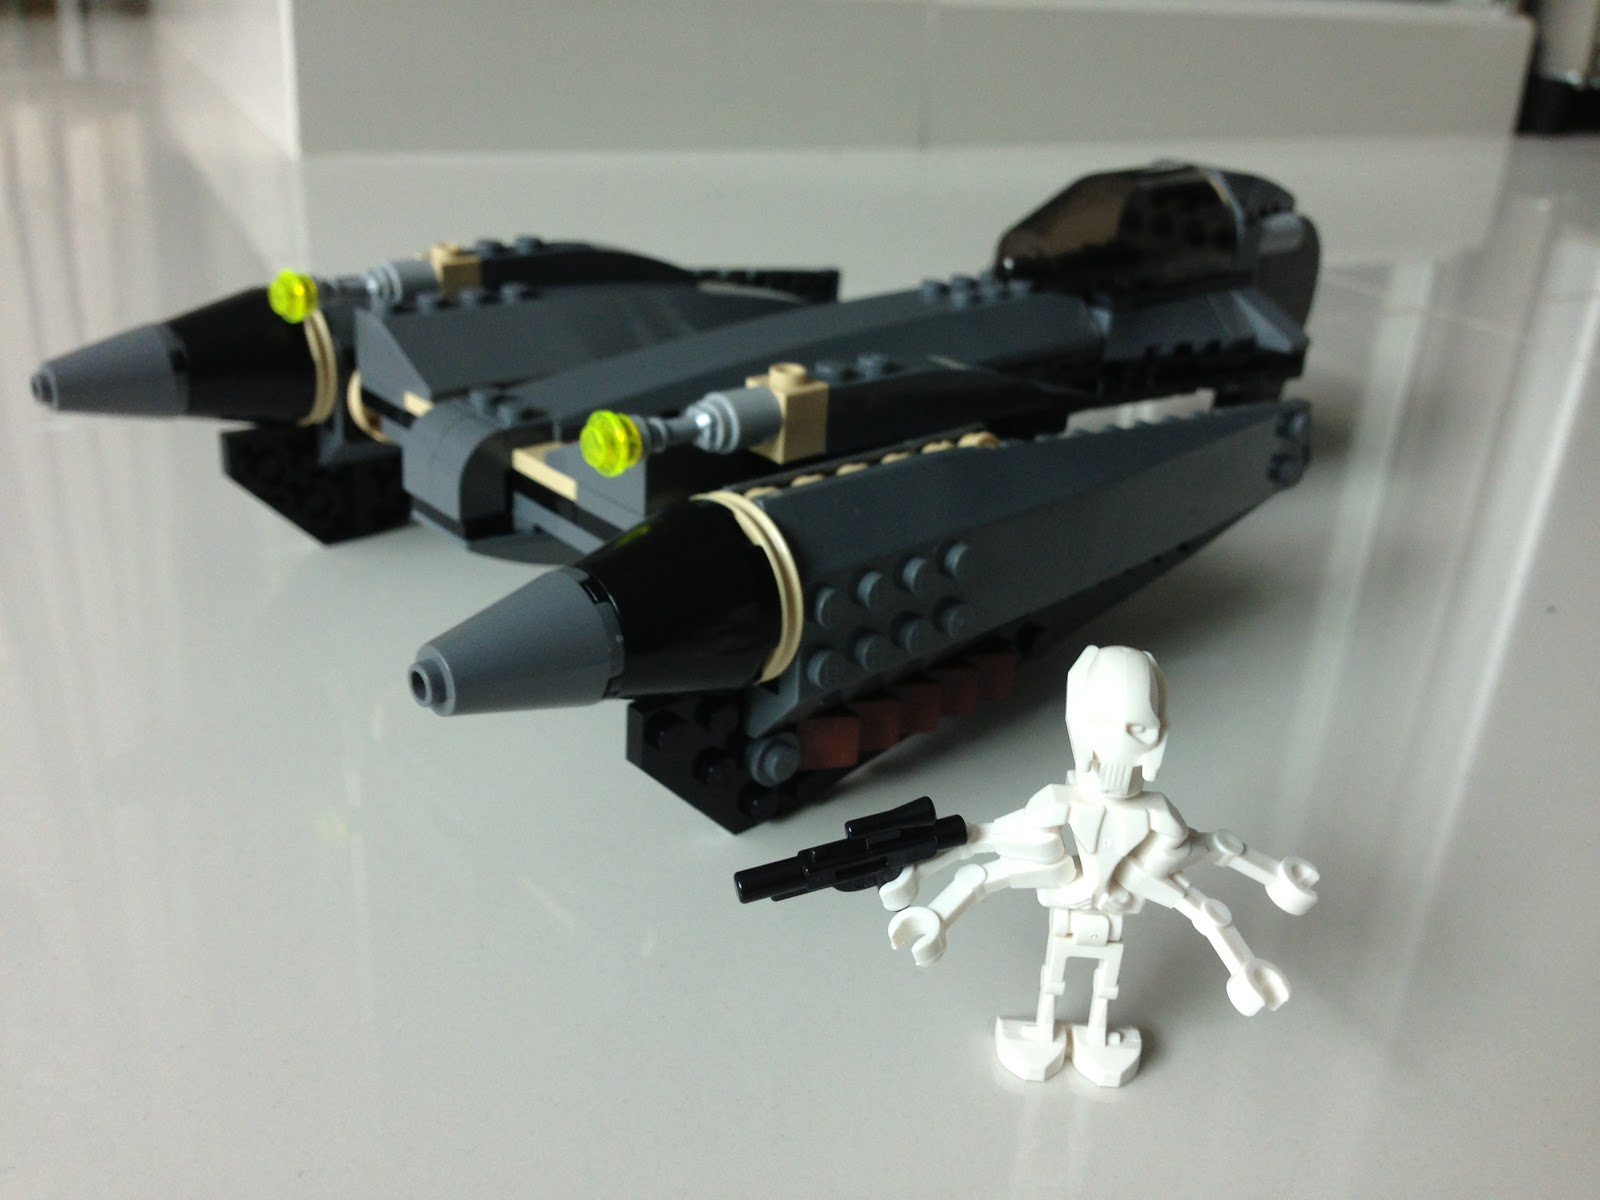 Lego Star Wars General Grievous Starfighter Review Lego ...